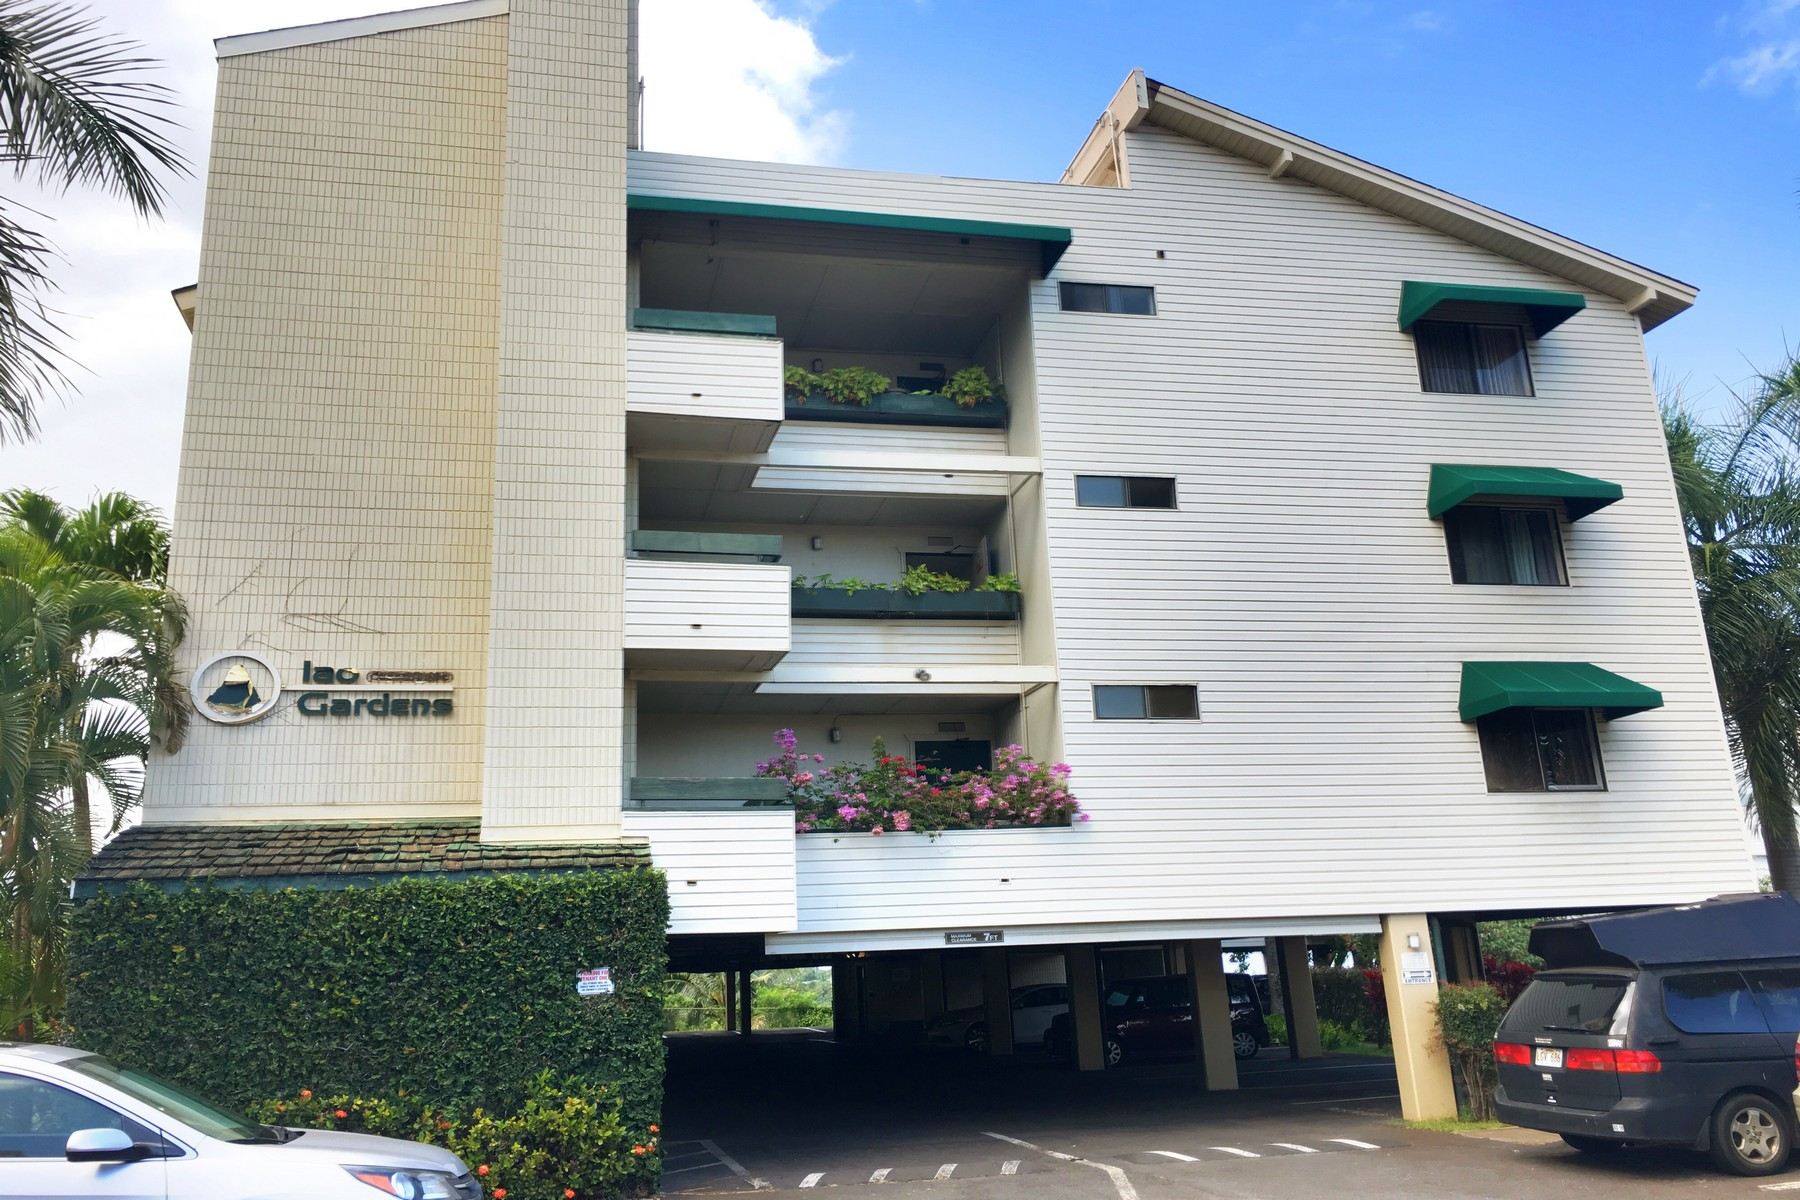 Кондоминиум для того Продажа на A Hidden Gem In The Heart of Wailuku 2180 Vineyard Street, Iao Gardens 309 Wailuku, Гавайи 96793 Соединенные Штаты